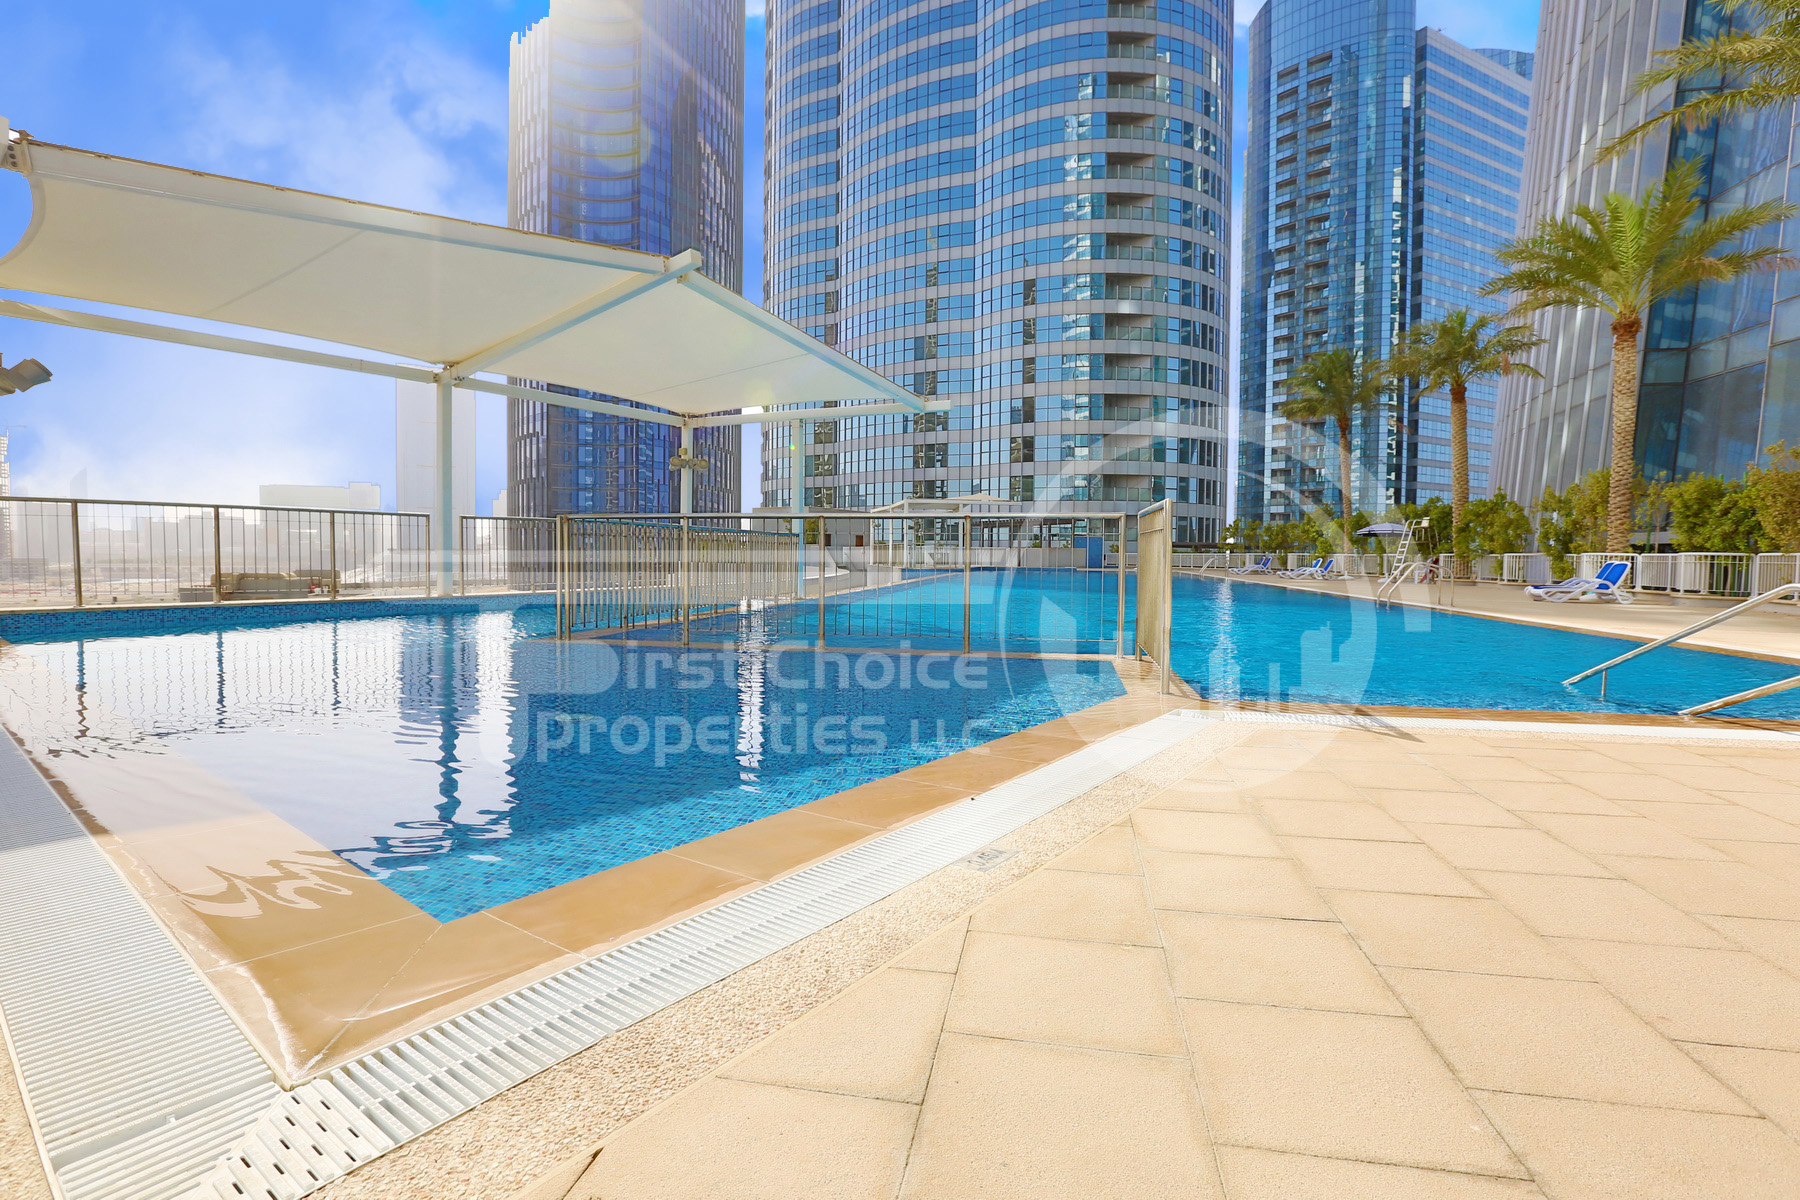 Studio - 1BR - 2BR - 3BR Apartment - Abu Dhabi - UAE - Al Reem Island - City of Lights - C2 Building - C3 Building - Outside View (33).JPG